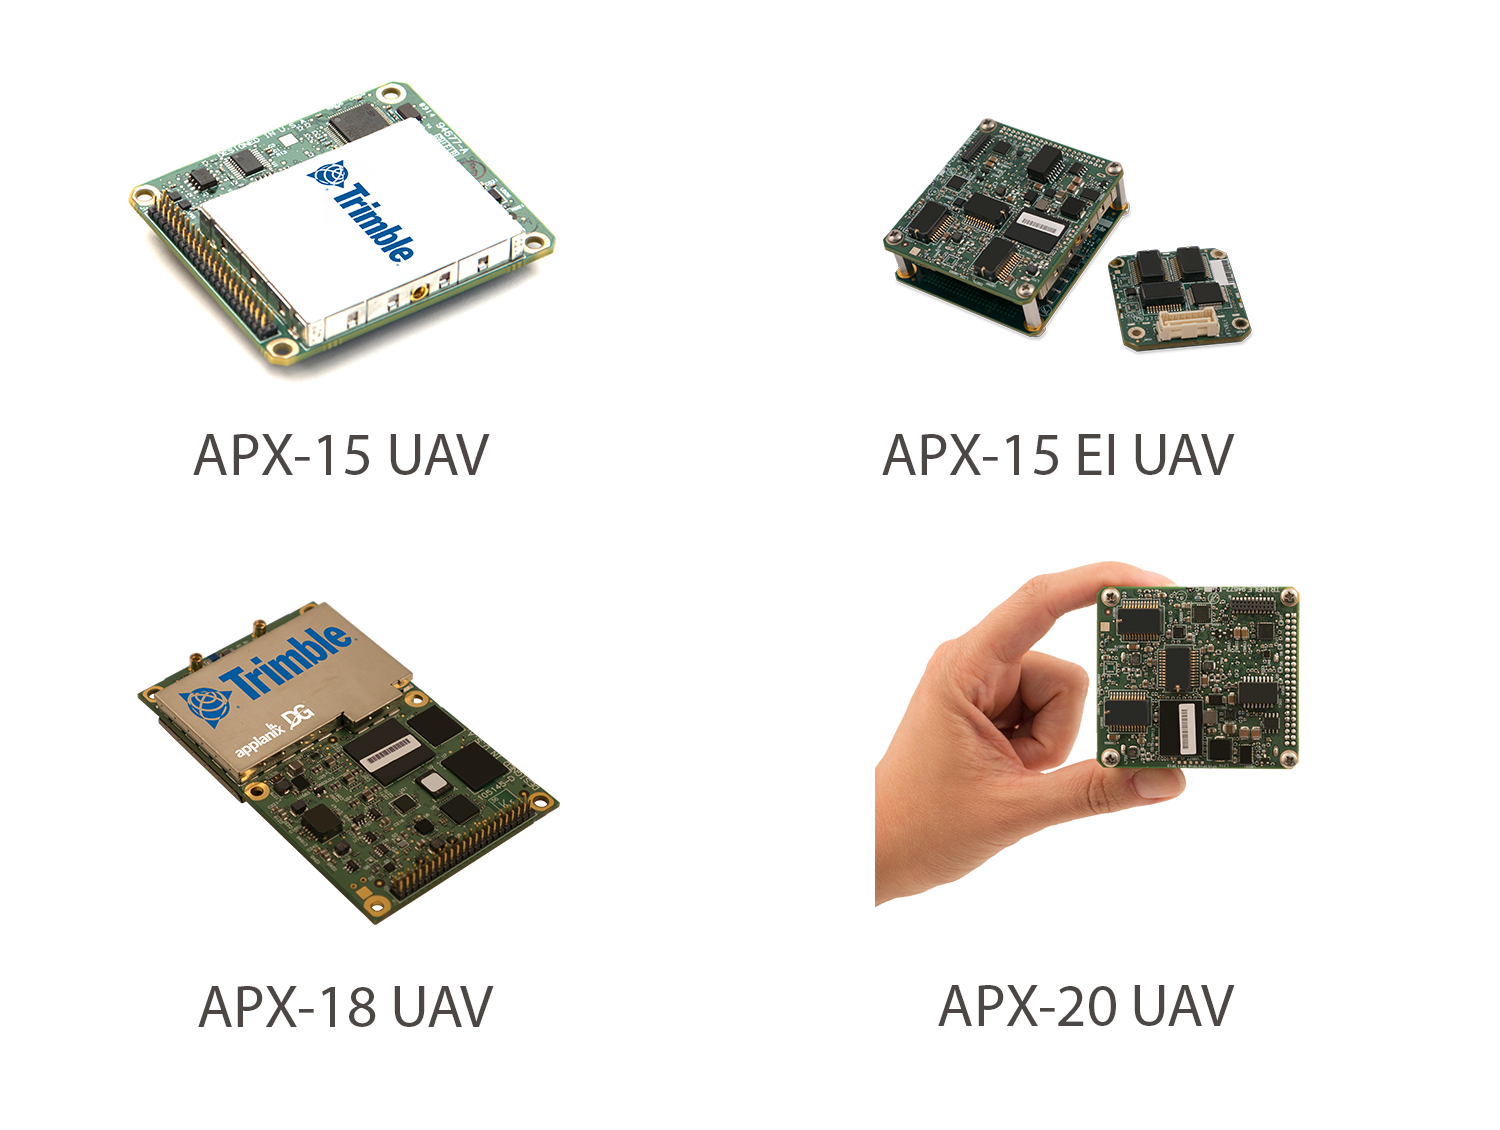 APX Family of OEM Boards